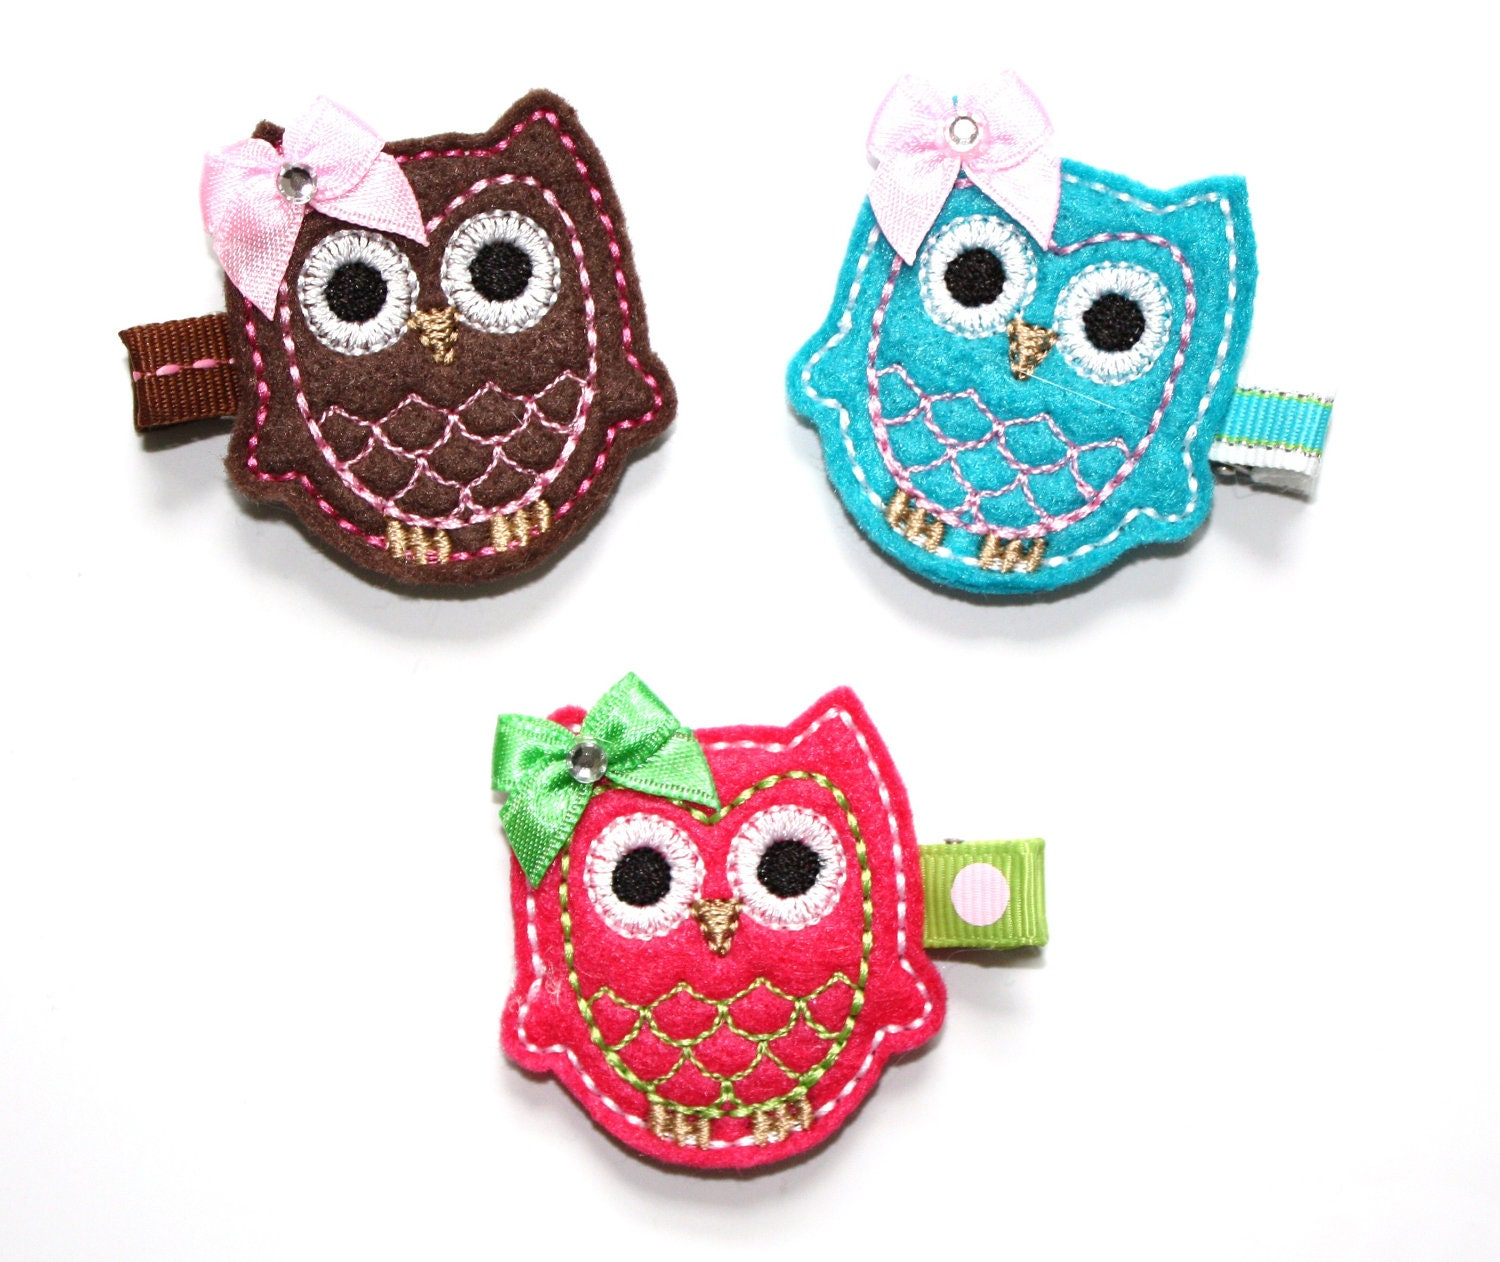 READY TO SHIP One Whimsical Felt Owl Hair Bow Clippie (one) - ThoseBows